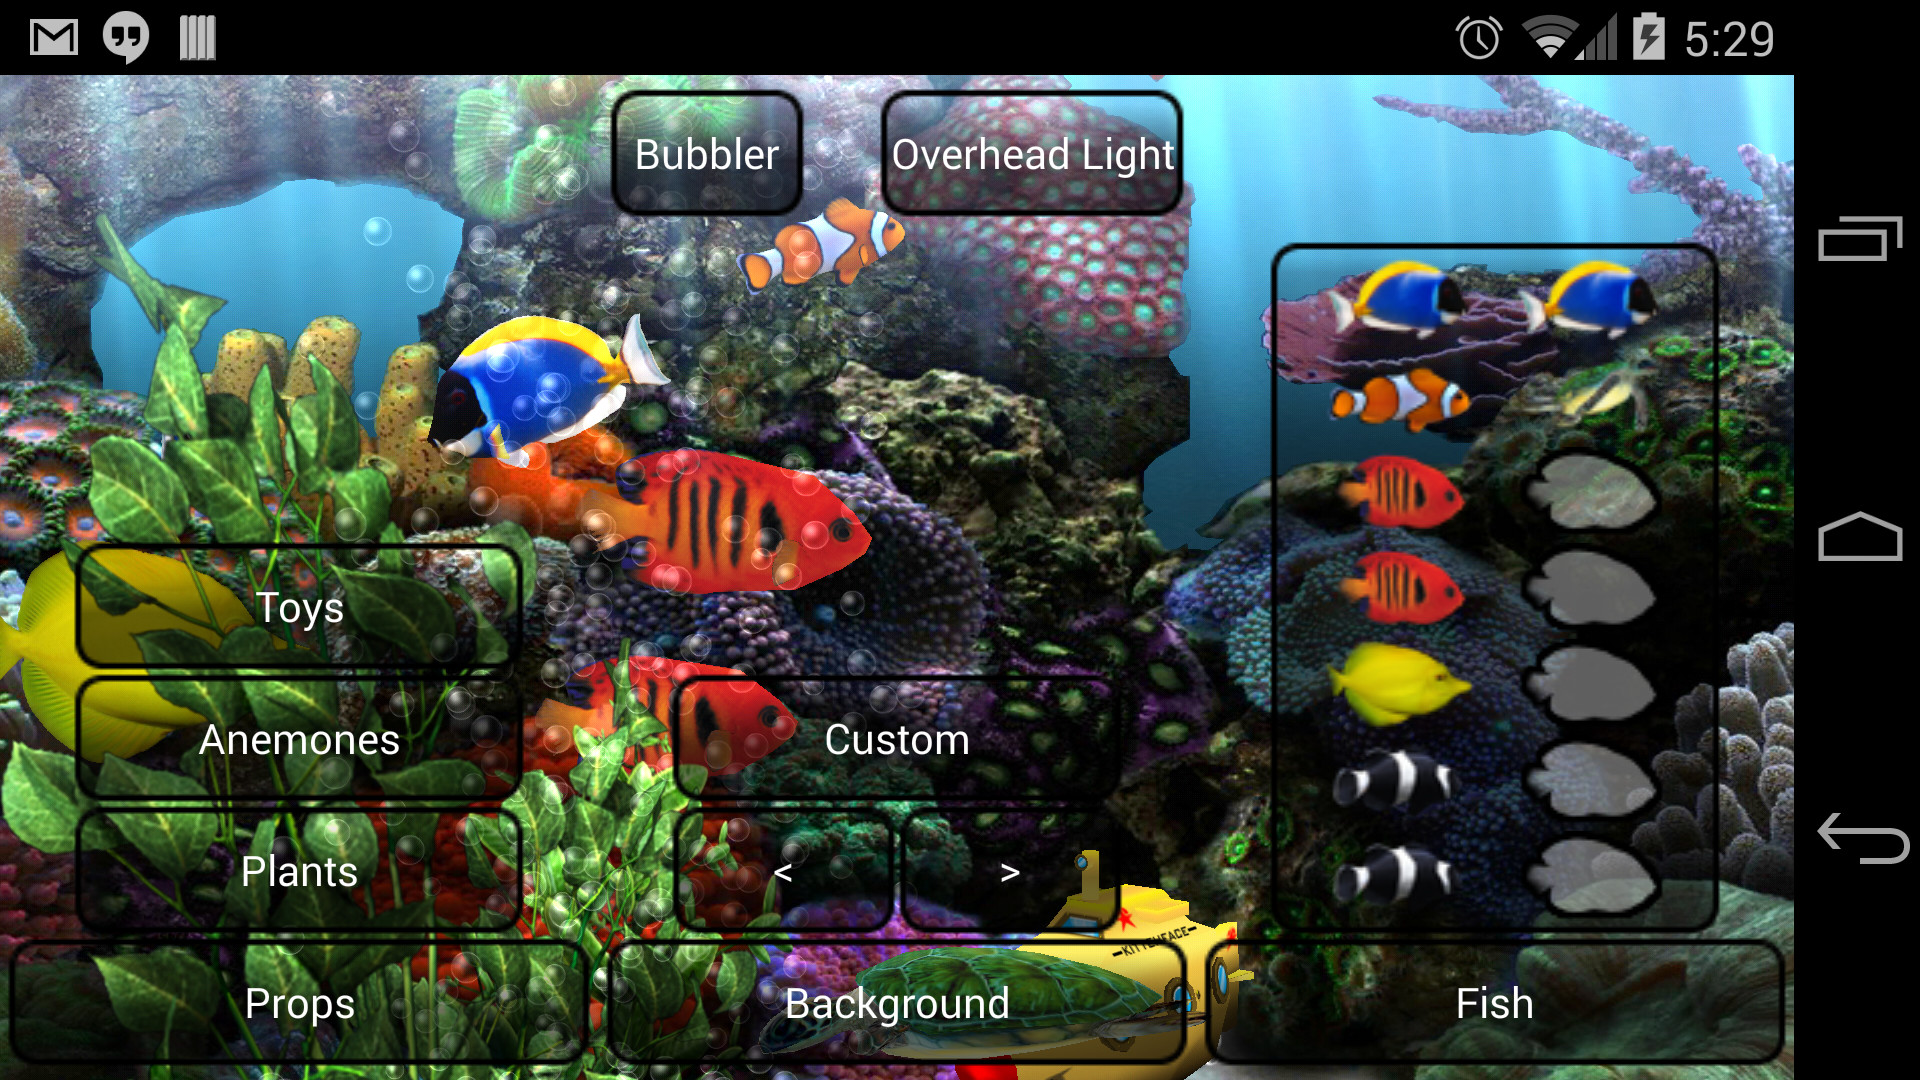 Aquarium live wallpaper android reviews at android quality index